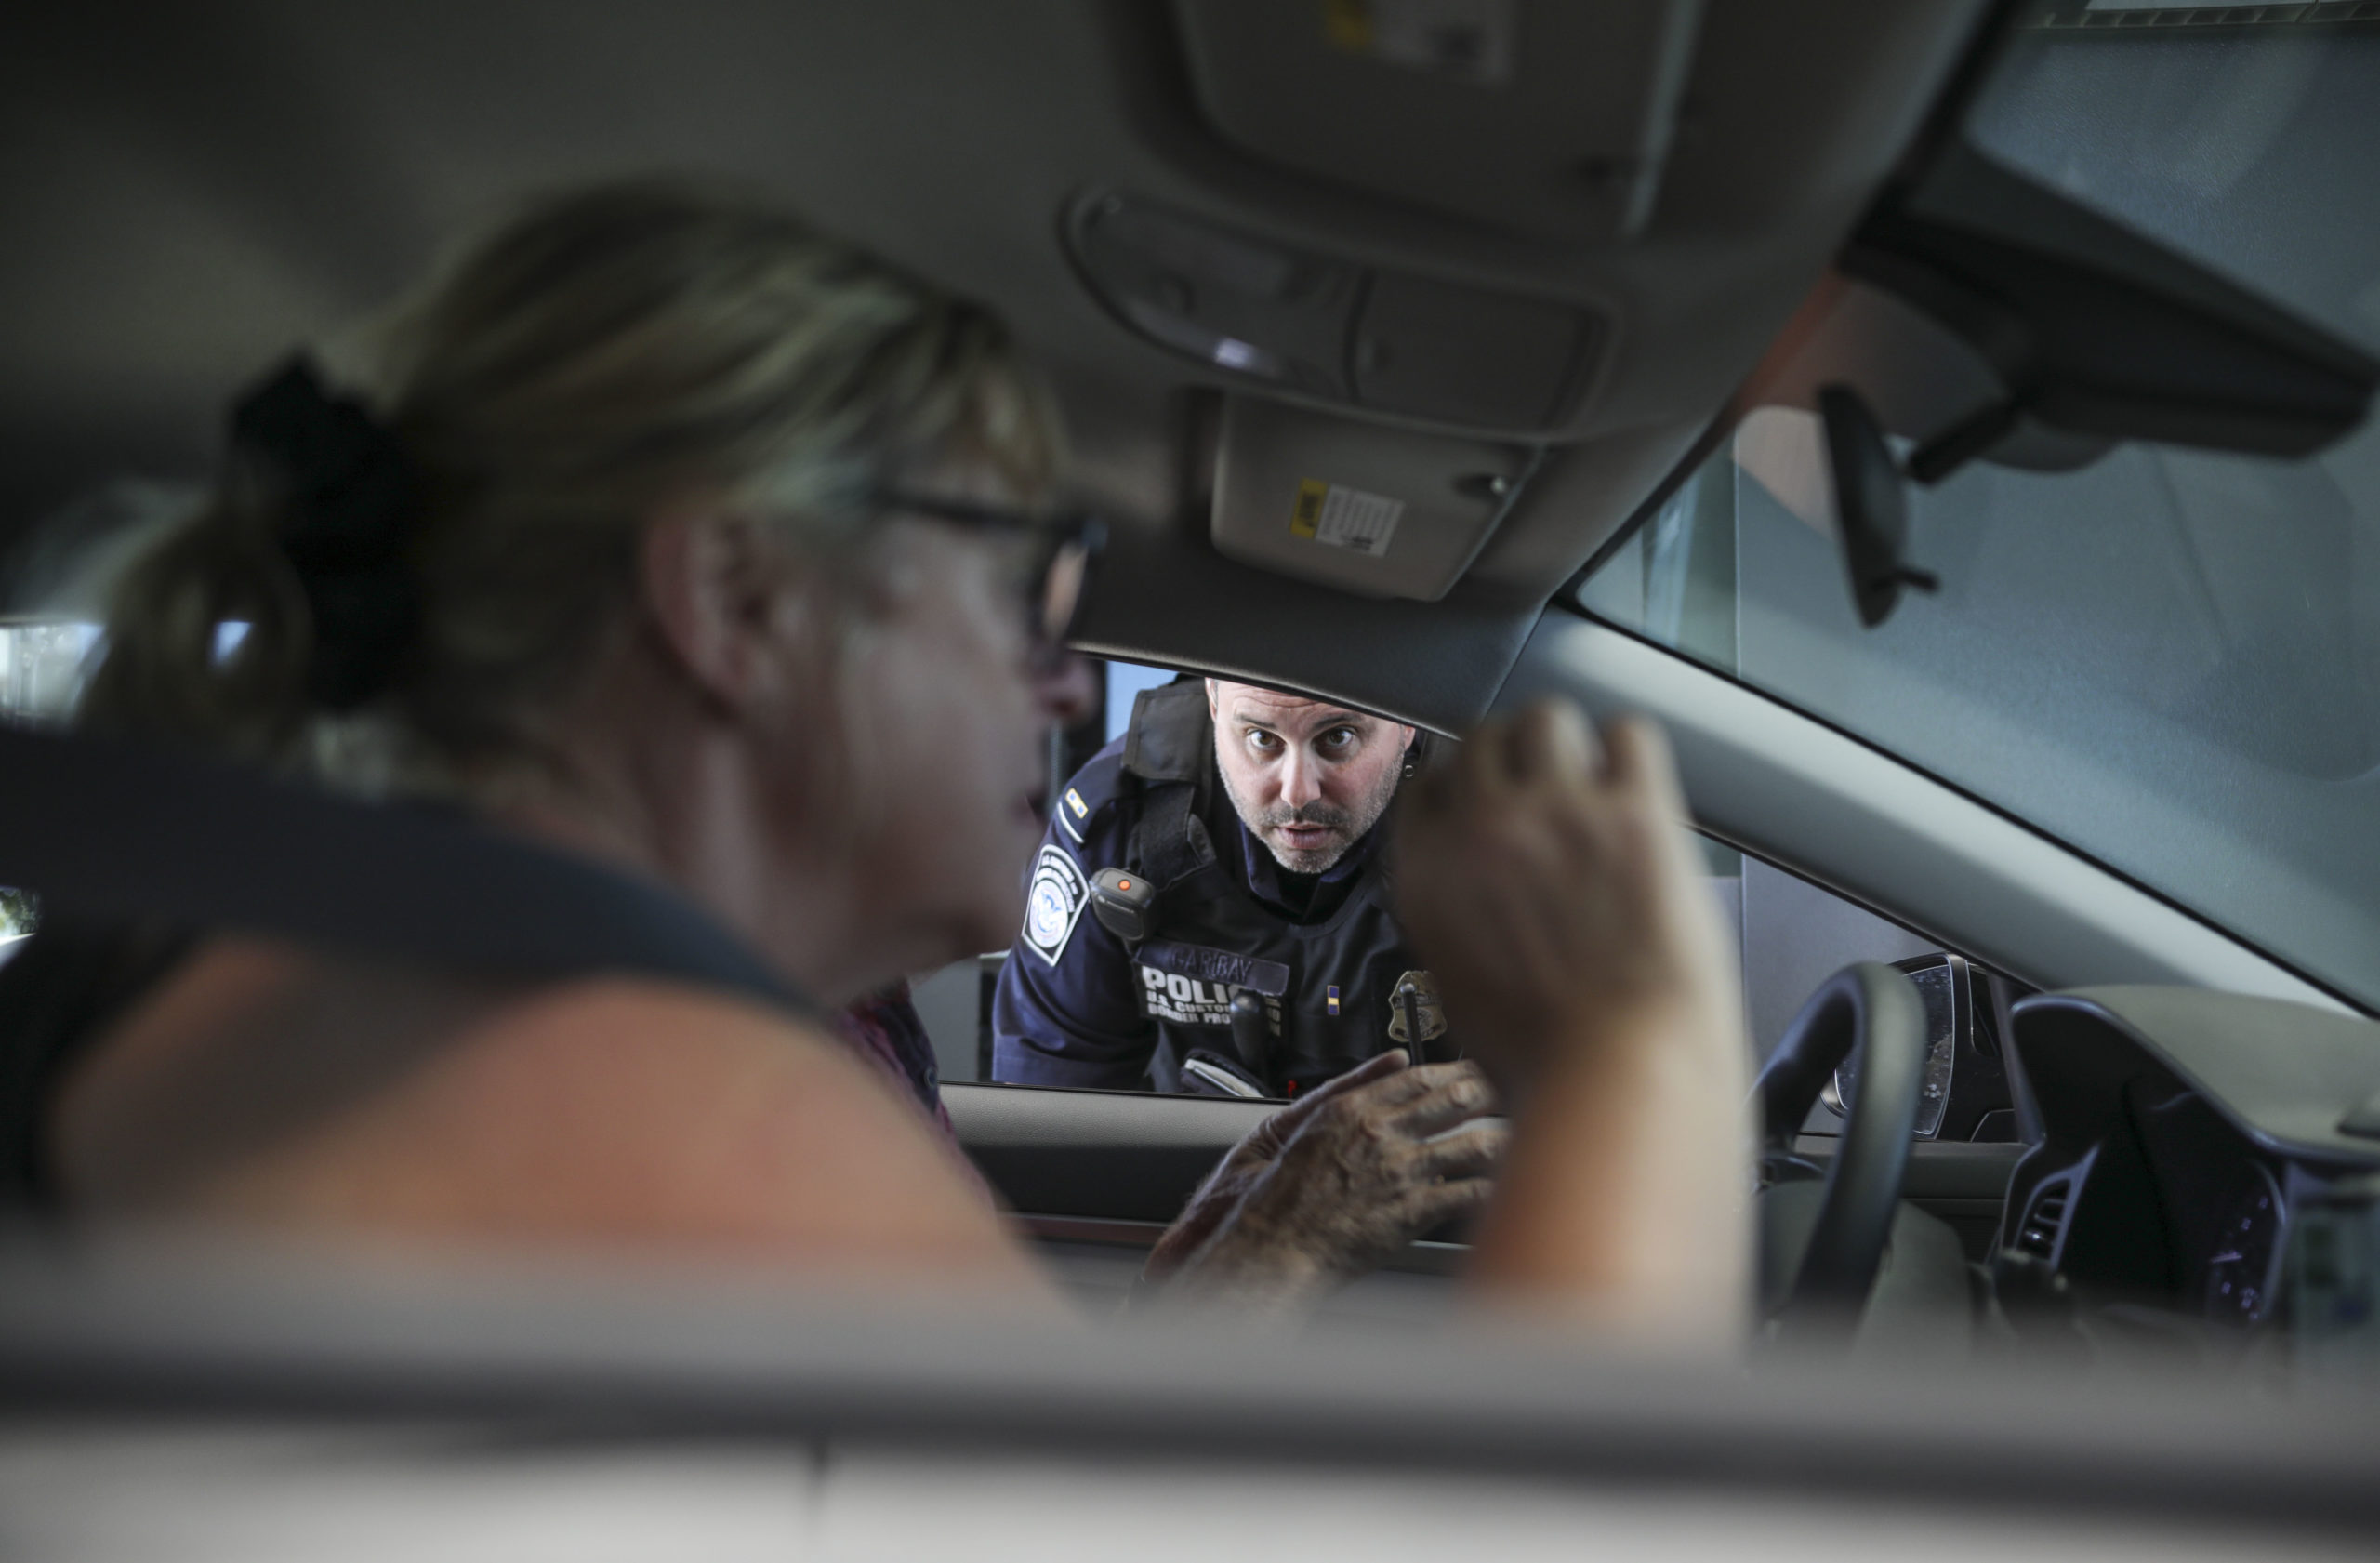 An Immigration and Customs Enforcement (ICE) agent checks motorists' documentation at the San Ysidro Port of Entry on October 2, 2019 in San Ysidro, California. - Fentanyl, a powerful painkiller approved by the US Food and Drug Administration for a range of conditions, has been central to the American opioid crisis which began in the late 1990s. China was the first country to manufacture illegal fentanyl for the US market, but the problem surged when trafficking through Mexico began around 2005, according to Donovan. (SANDY HUFFAKER/AFP via Getty Images)